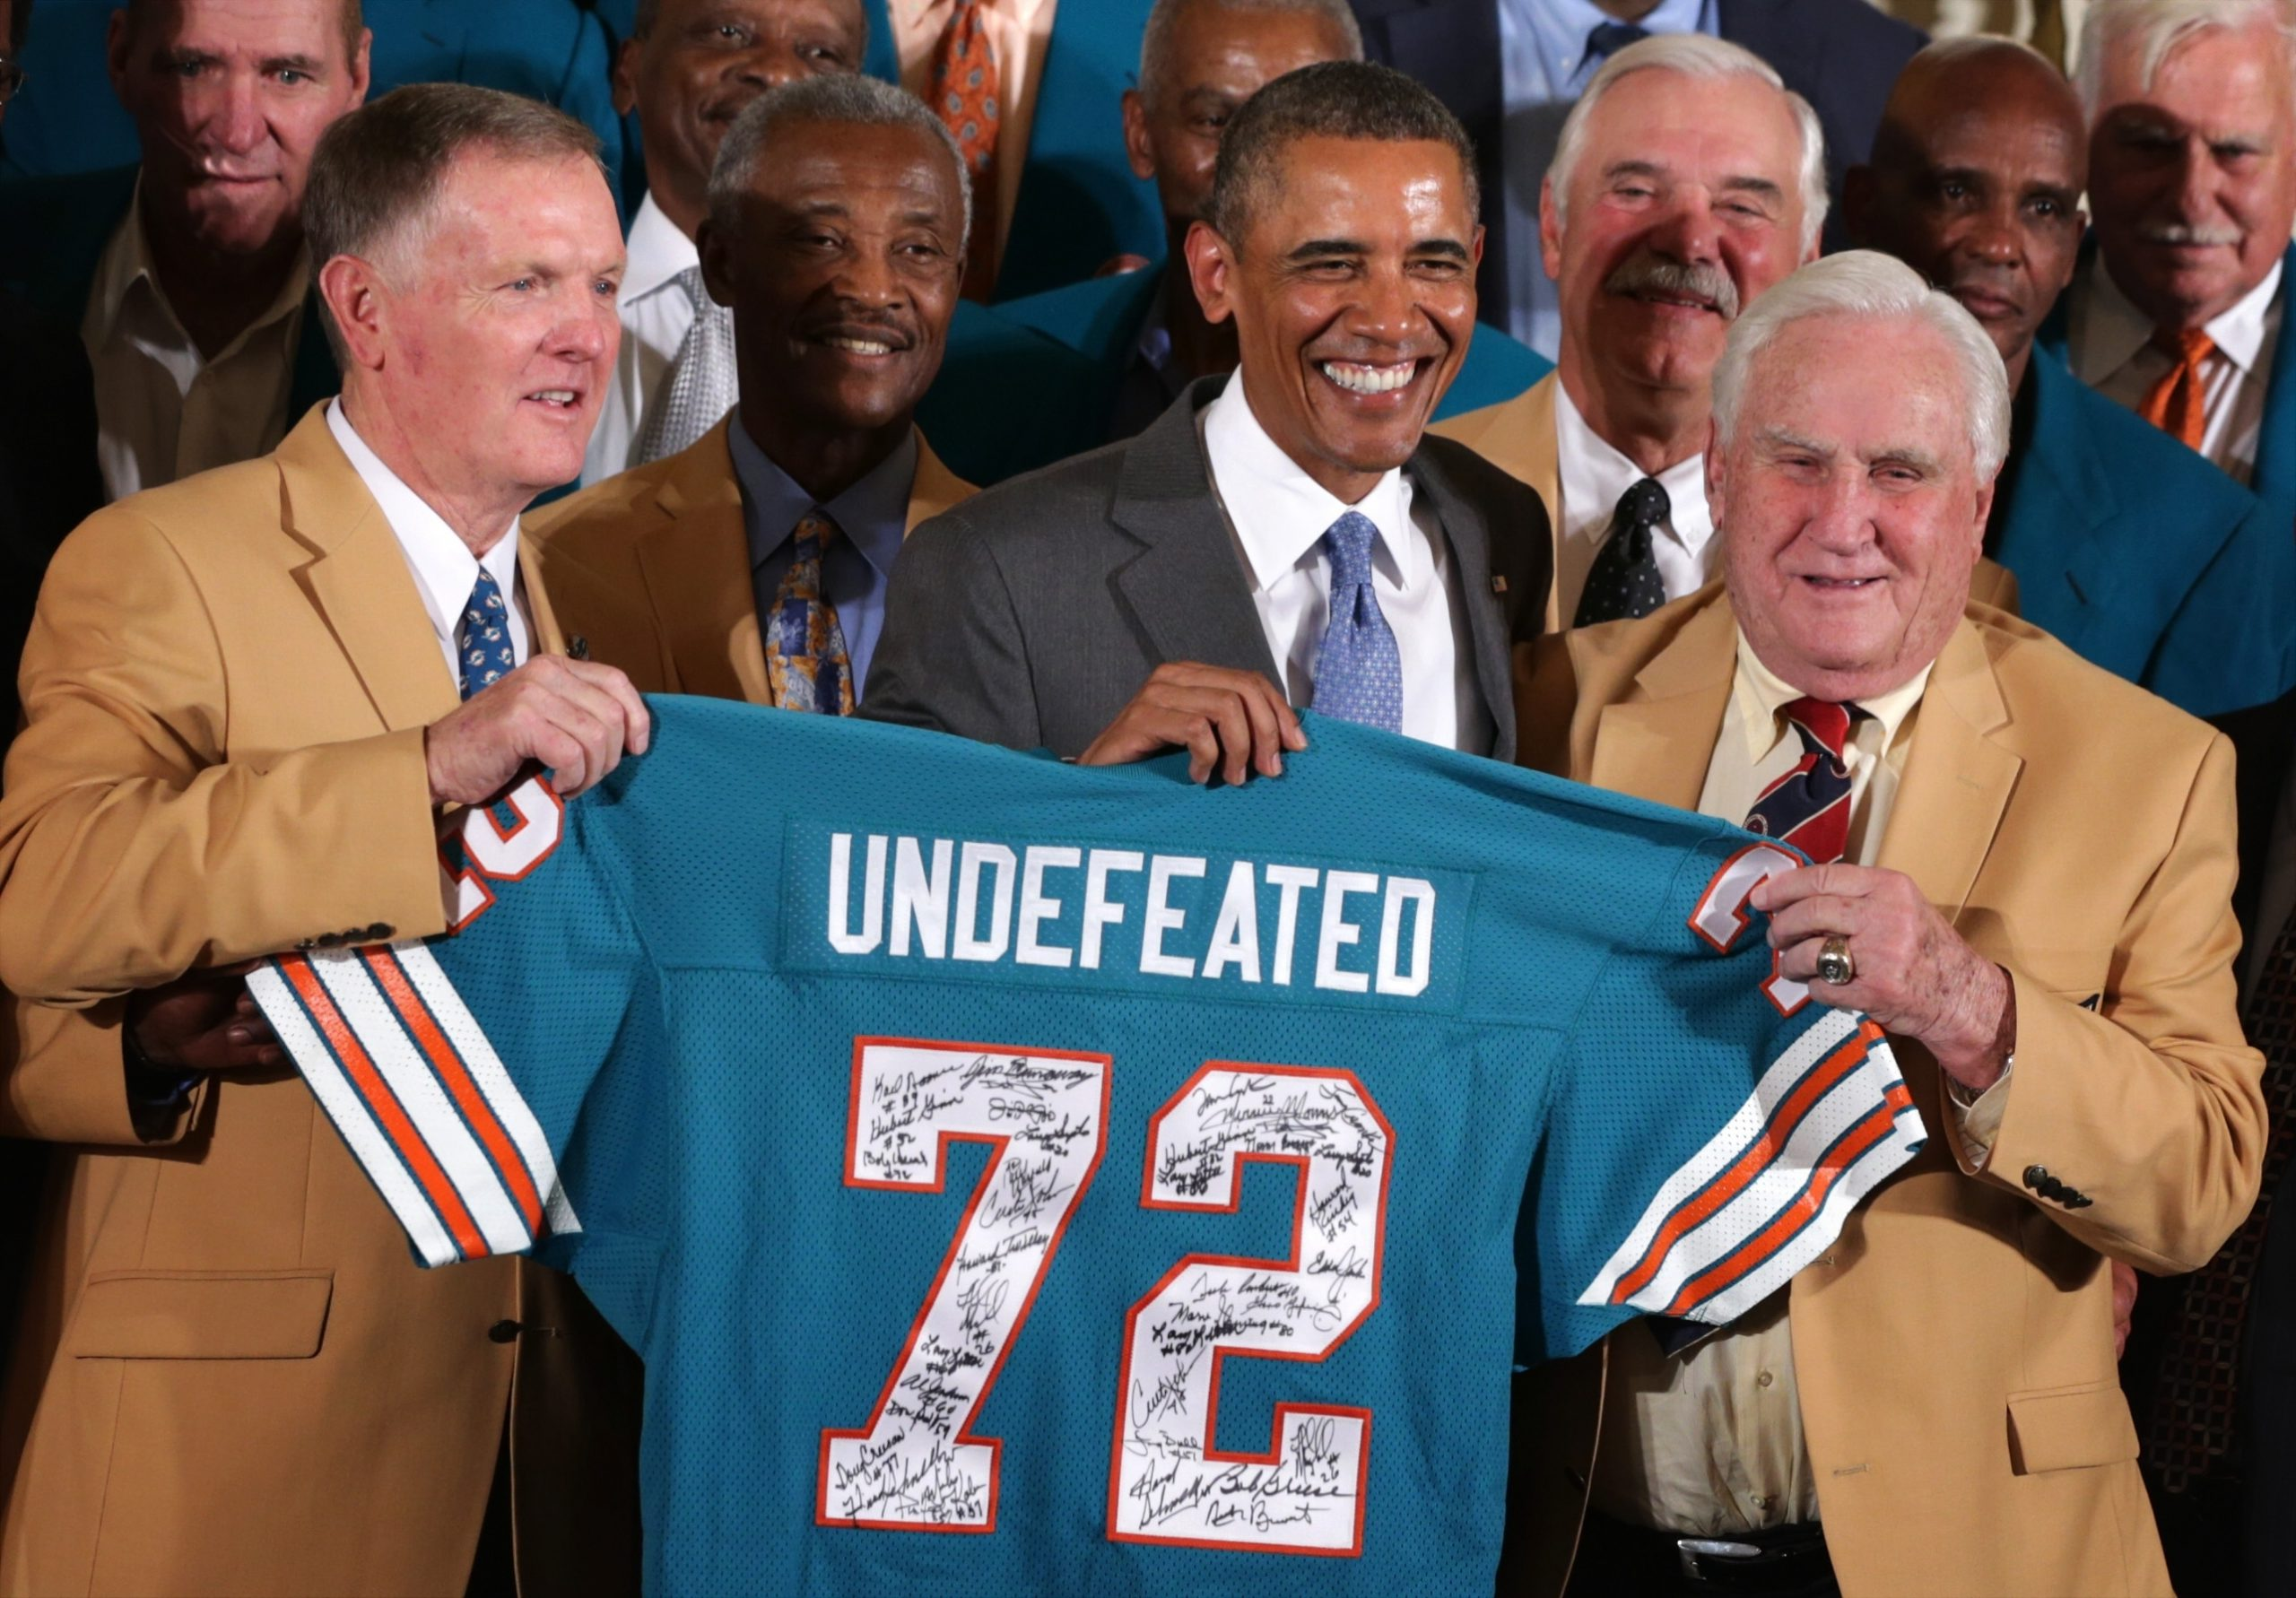 Dolphins Completed Their Run Of A Perfect Season On This Day pertaining to Miami Dolphins Undefeated Season Super Bowl